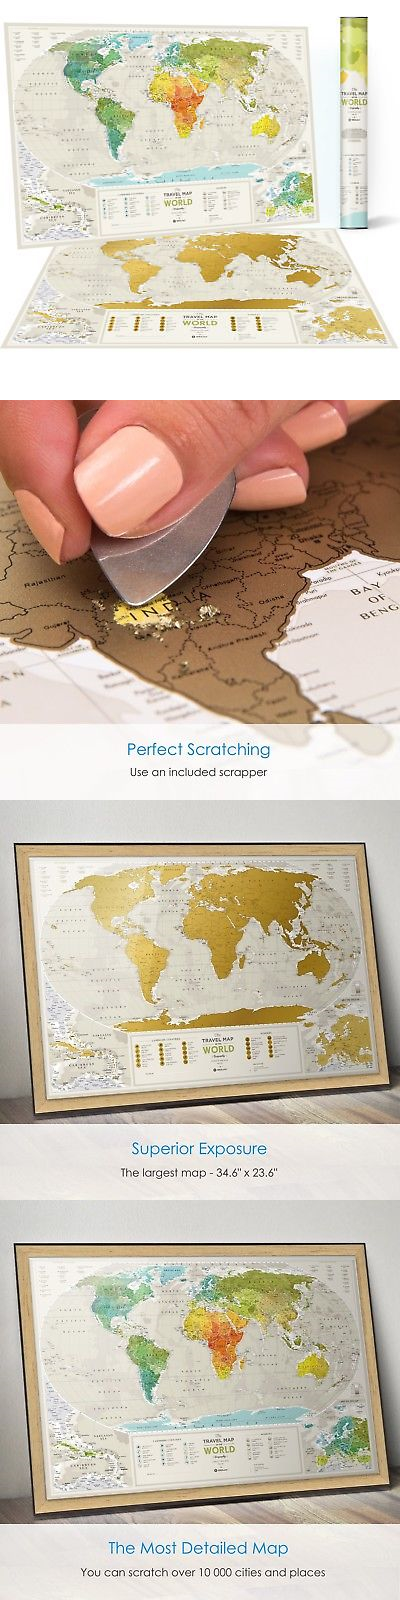 Other travel maps 164807 detailed scratch off places world map other travel maps 164807 detailed scratch off places world map premium edition 346 gumiabroncs Images